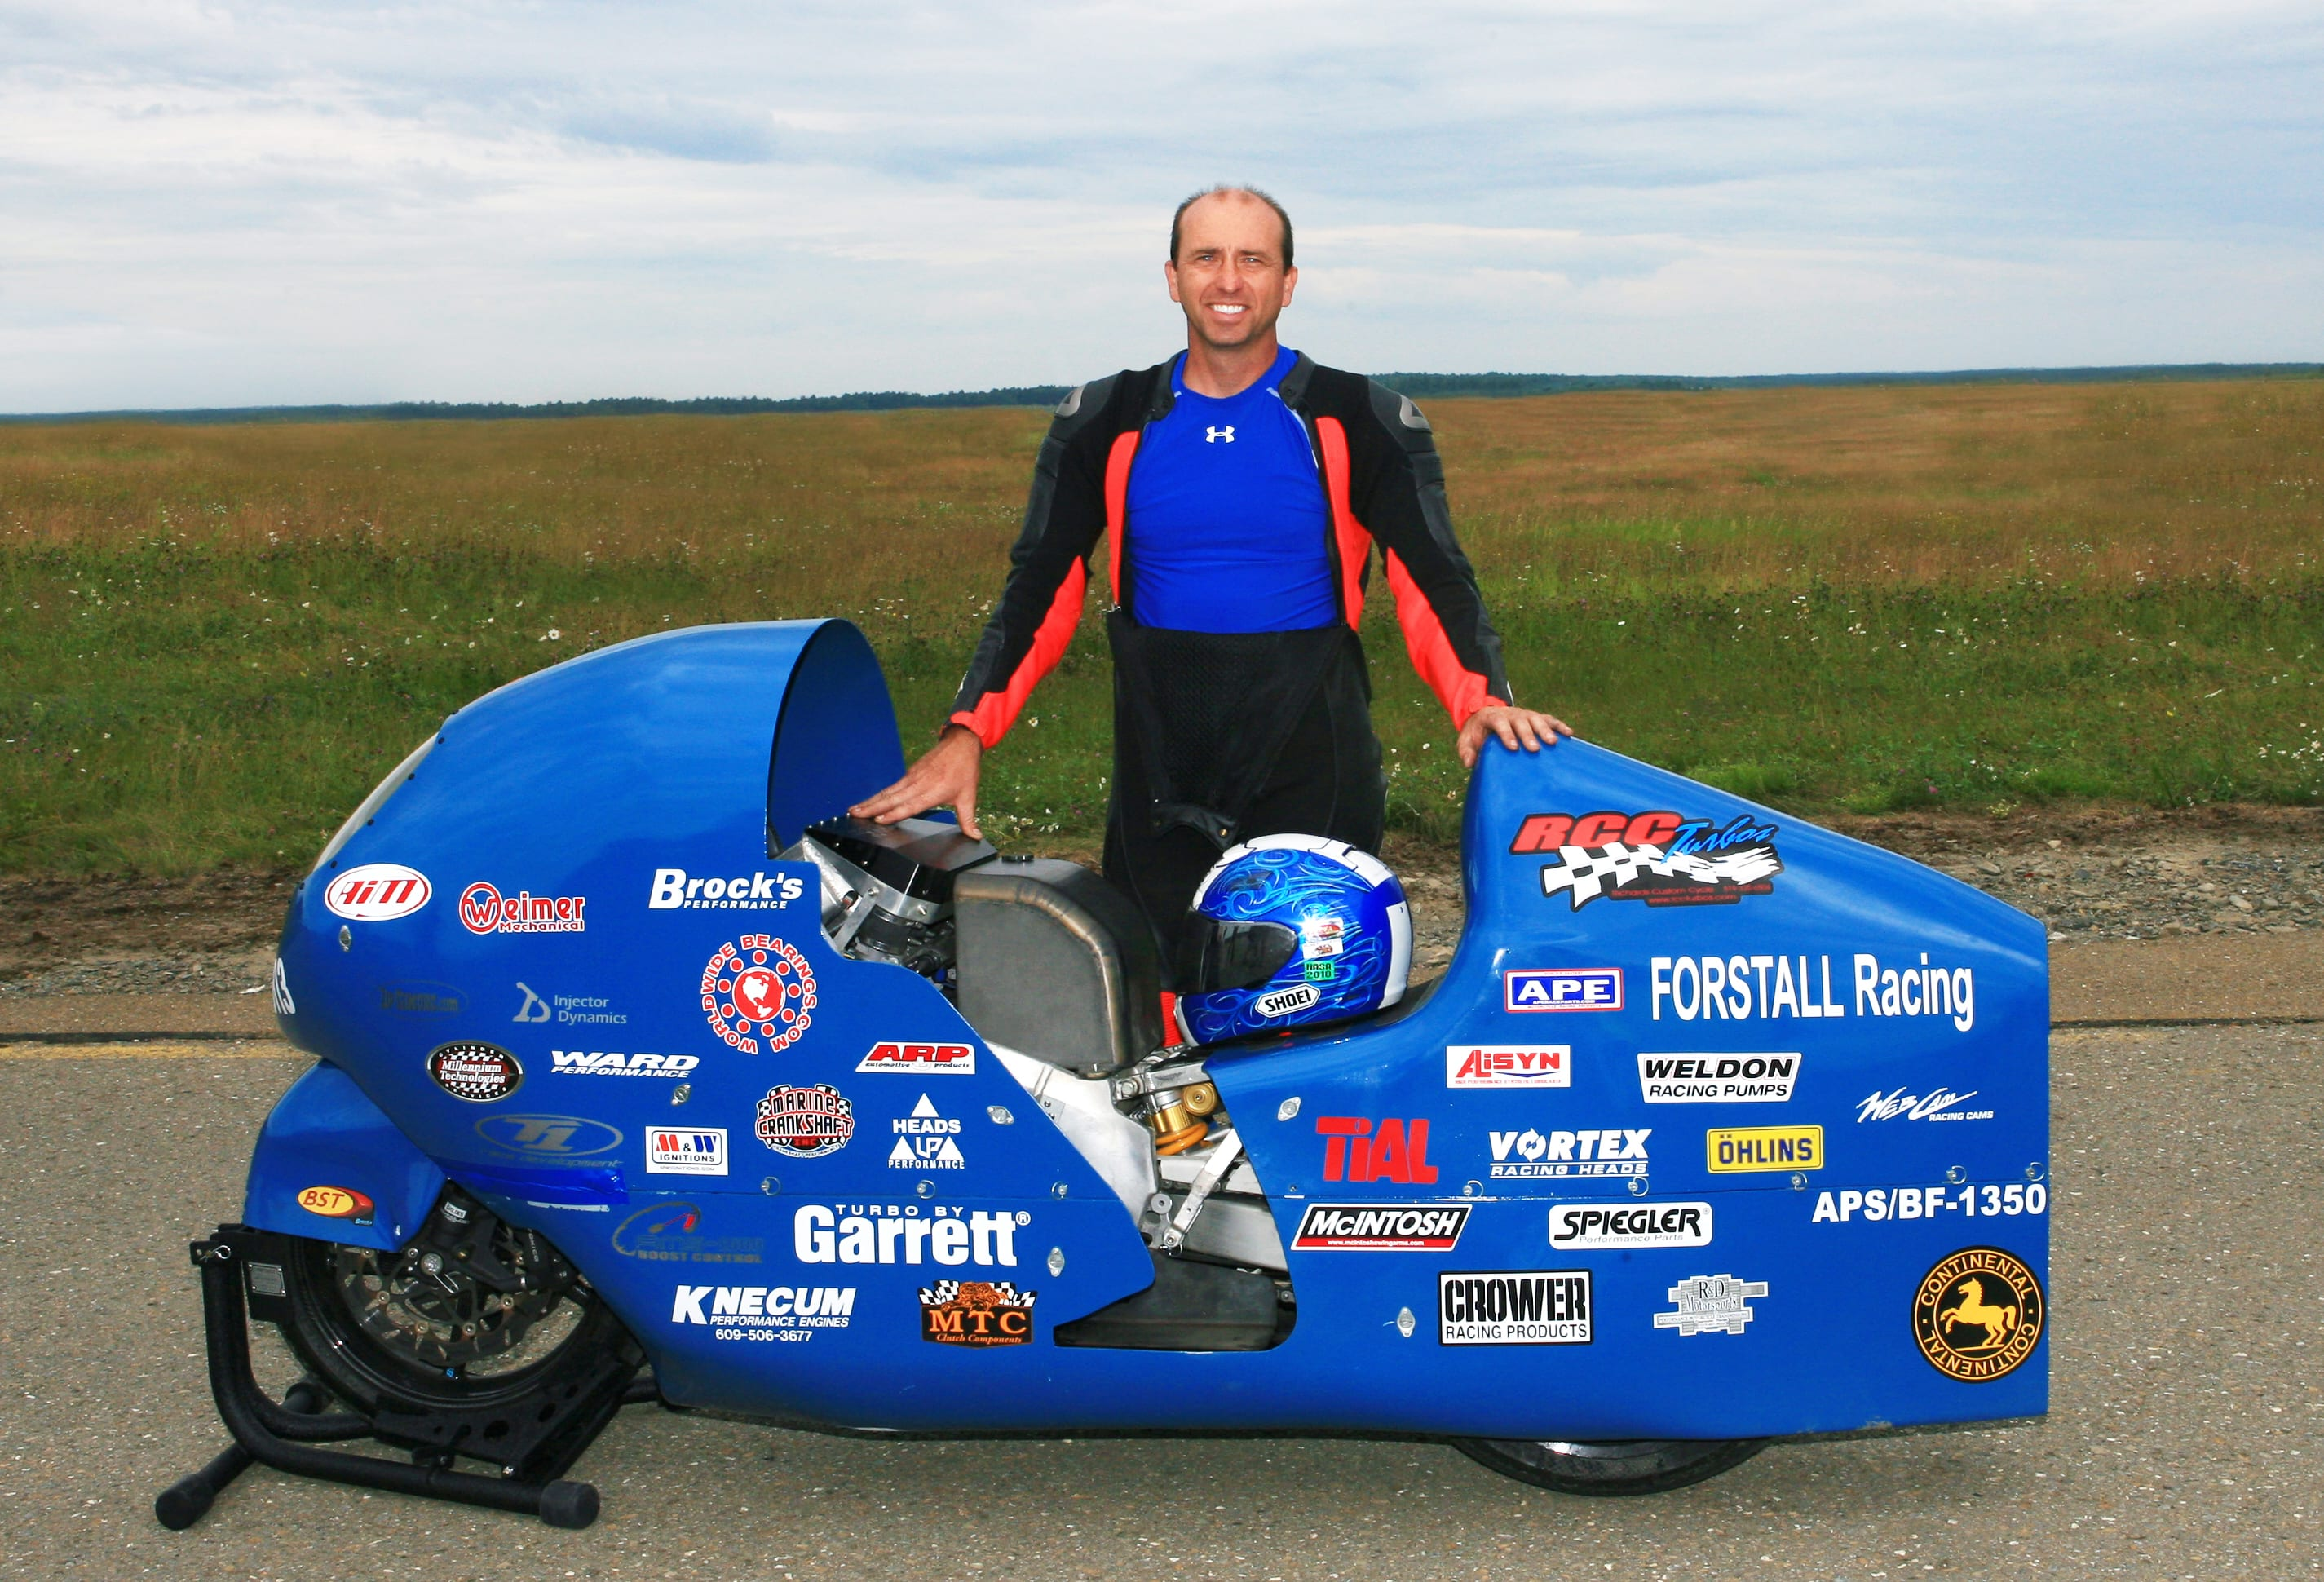 fastest motorcyclist bill warner